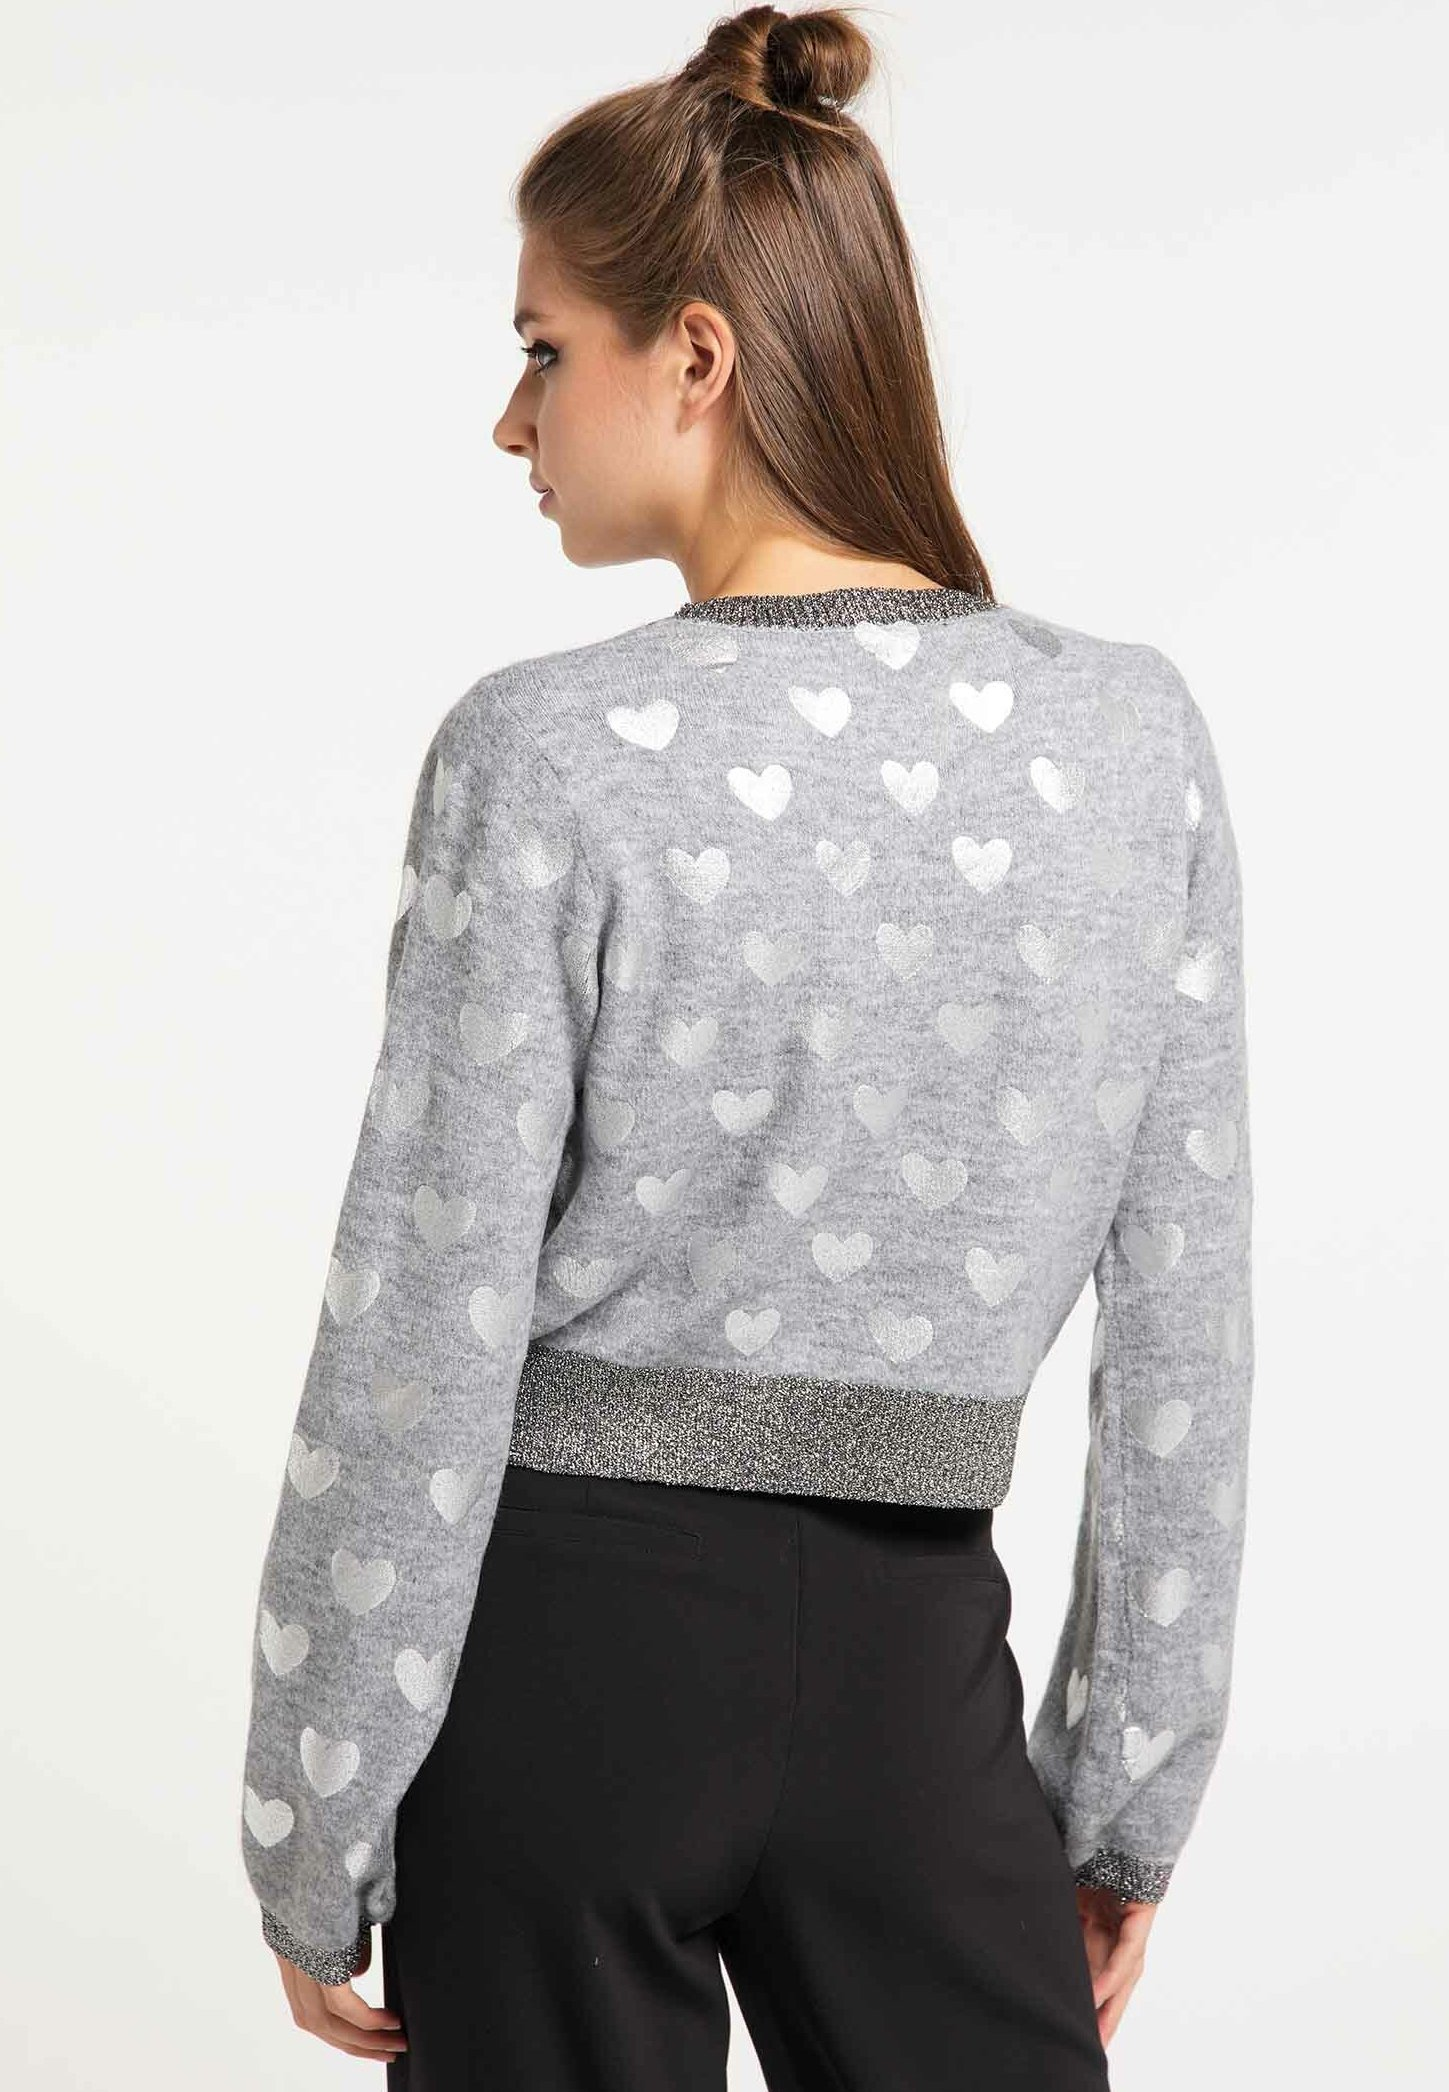 myMo at night Sweater - grey - Dames jas Nieuw